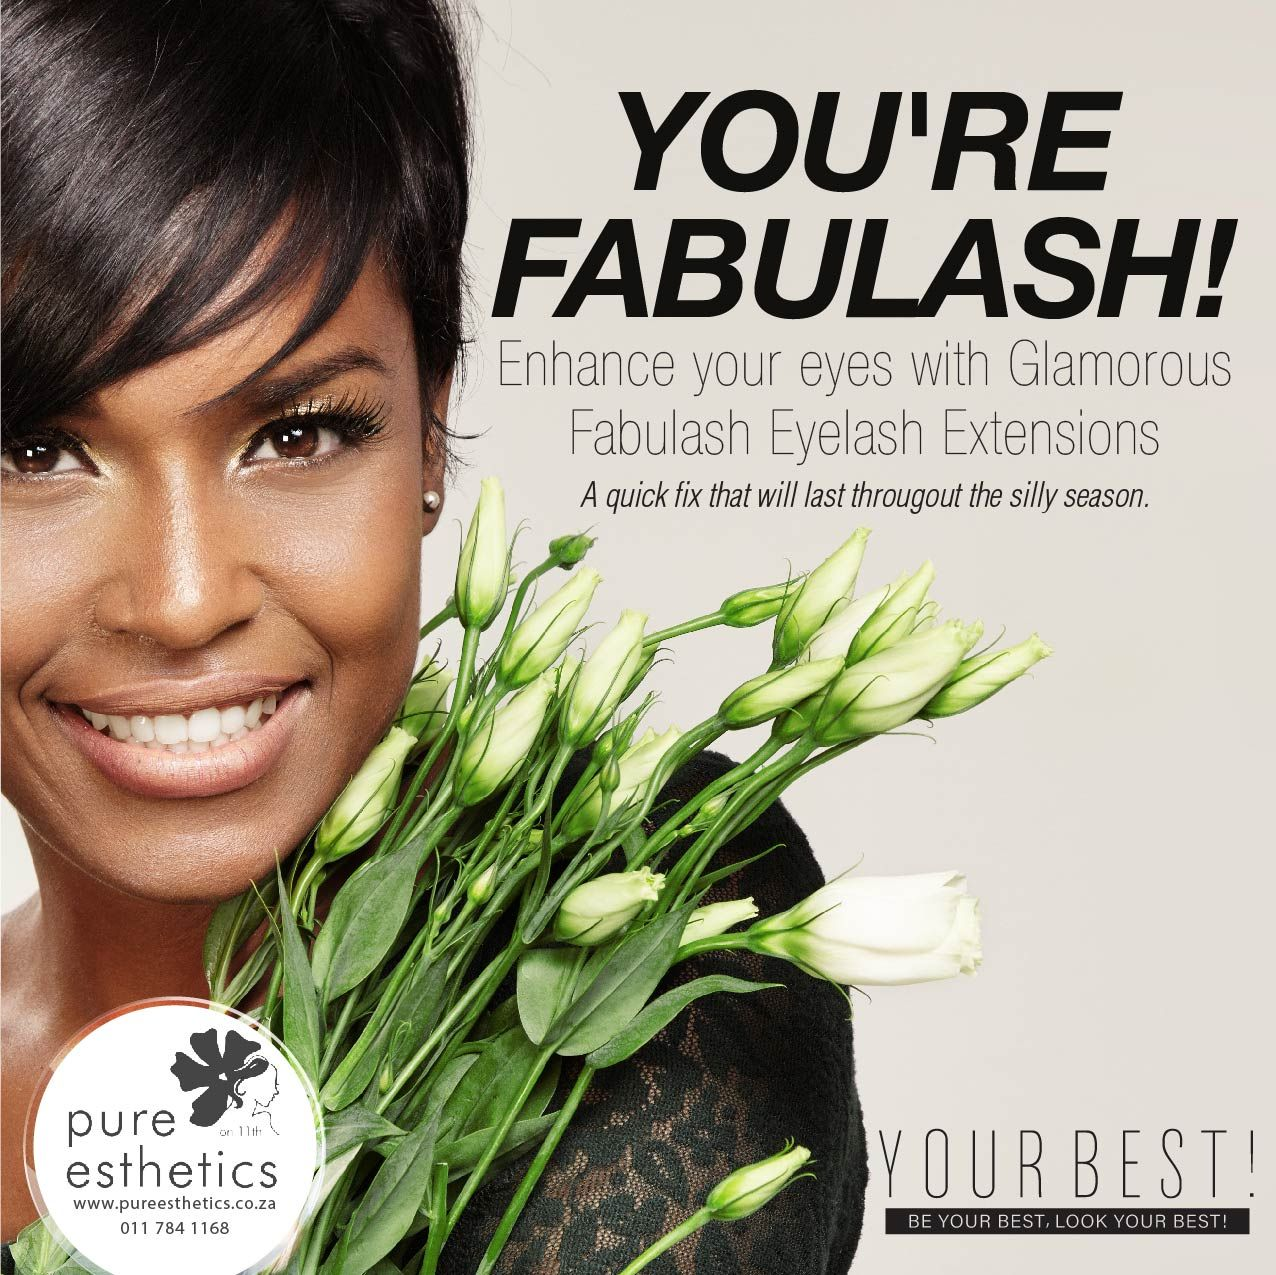 You're FABULASH! Enhance your eyes with Glamorous Fabulash Eyelash Extensions A quick fix that will last throughout the silly season. Contact us on 011 784 1168 for more information or appointment. #fabulash #redcarpetready #beautyquickfix #glamorouseyes